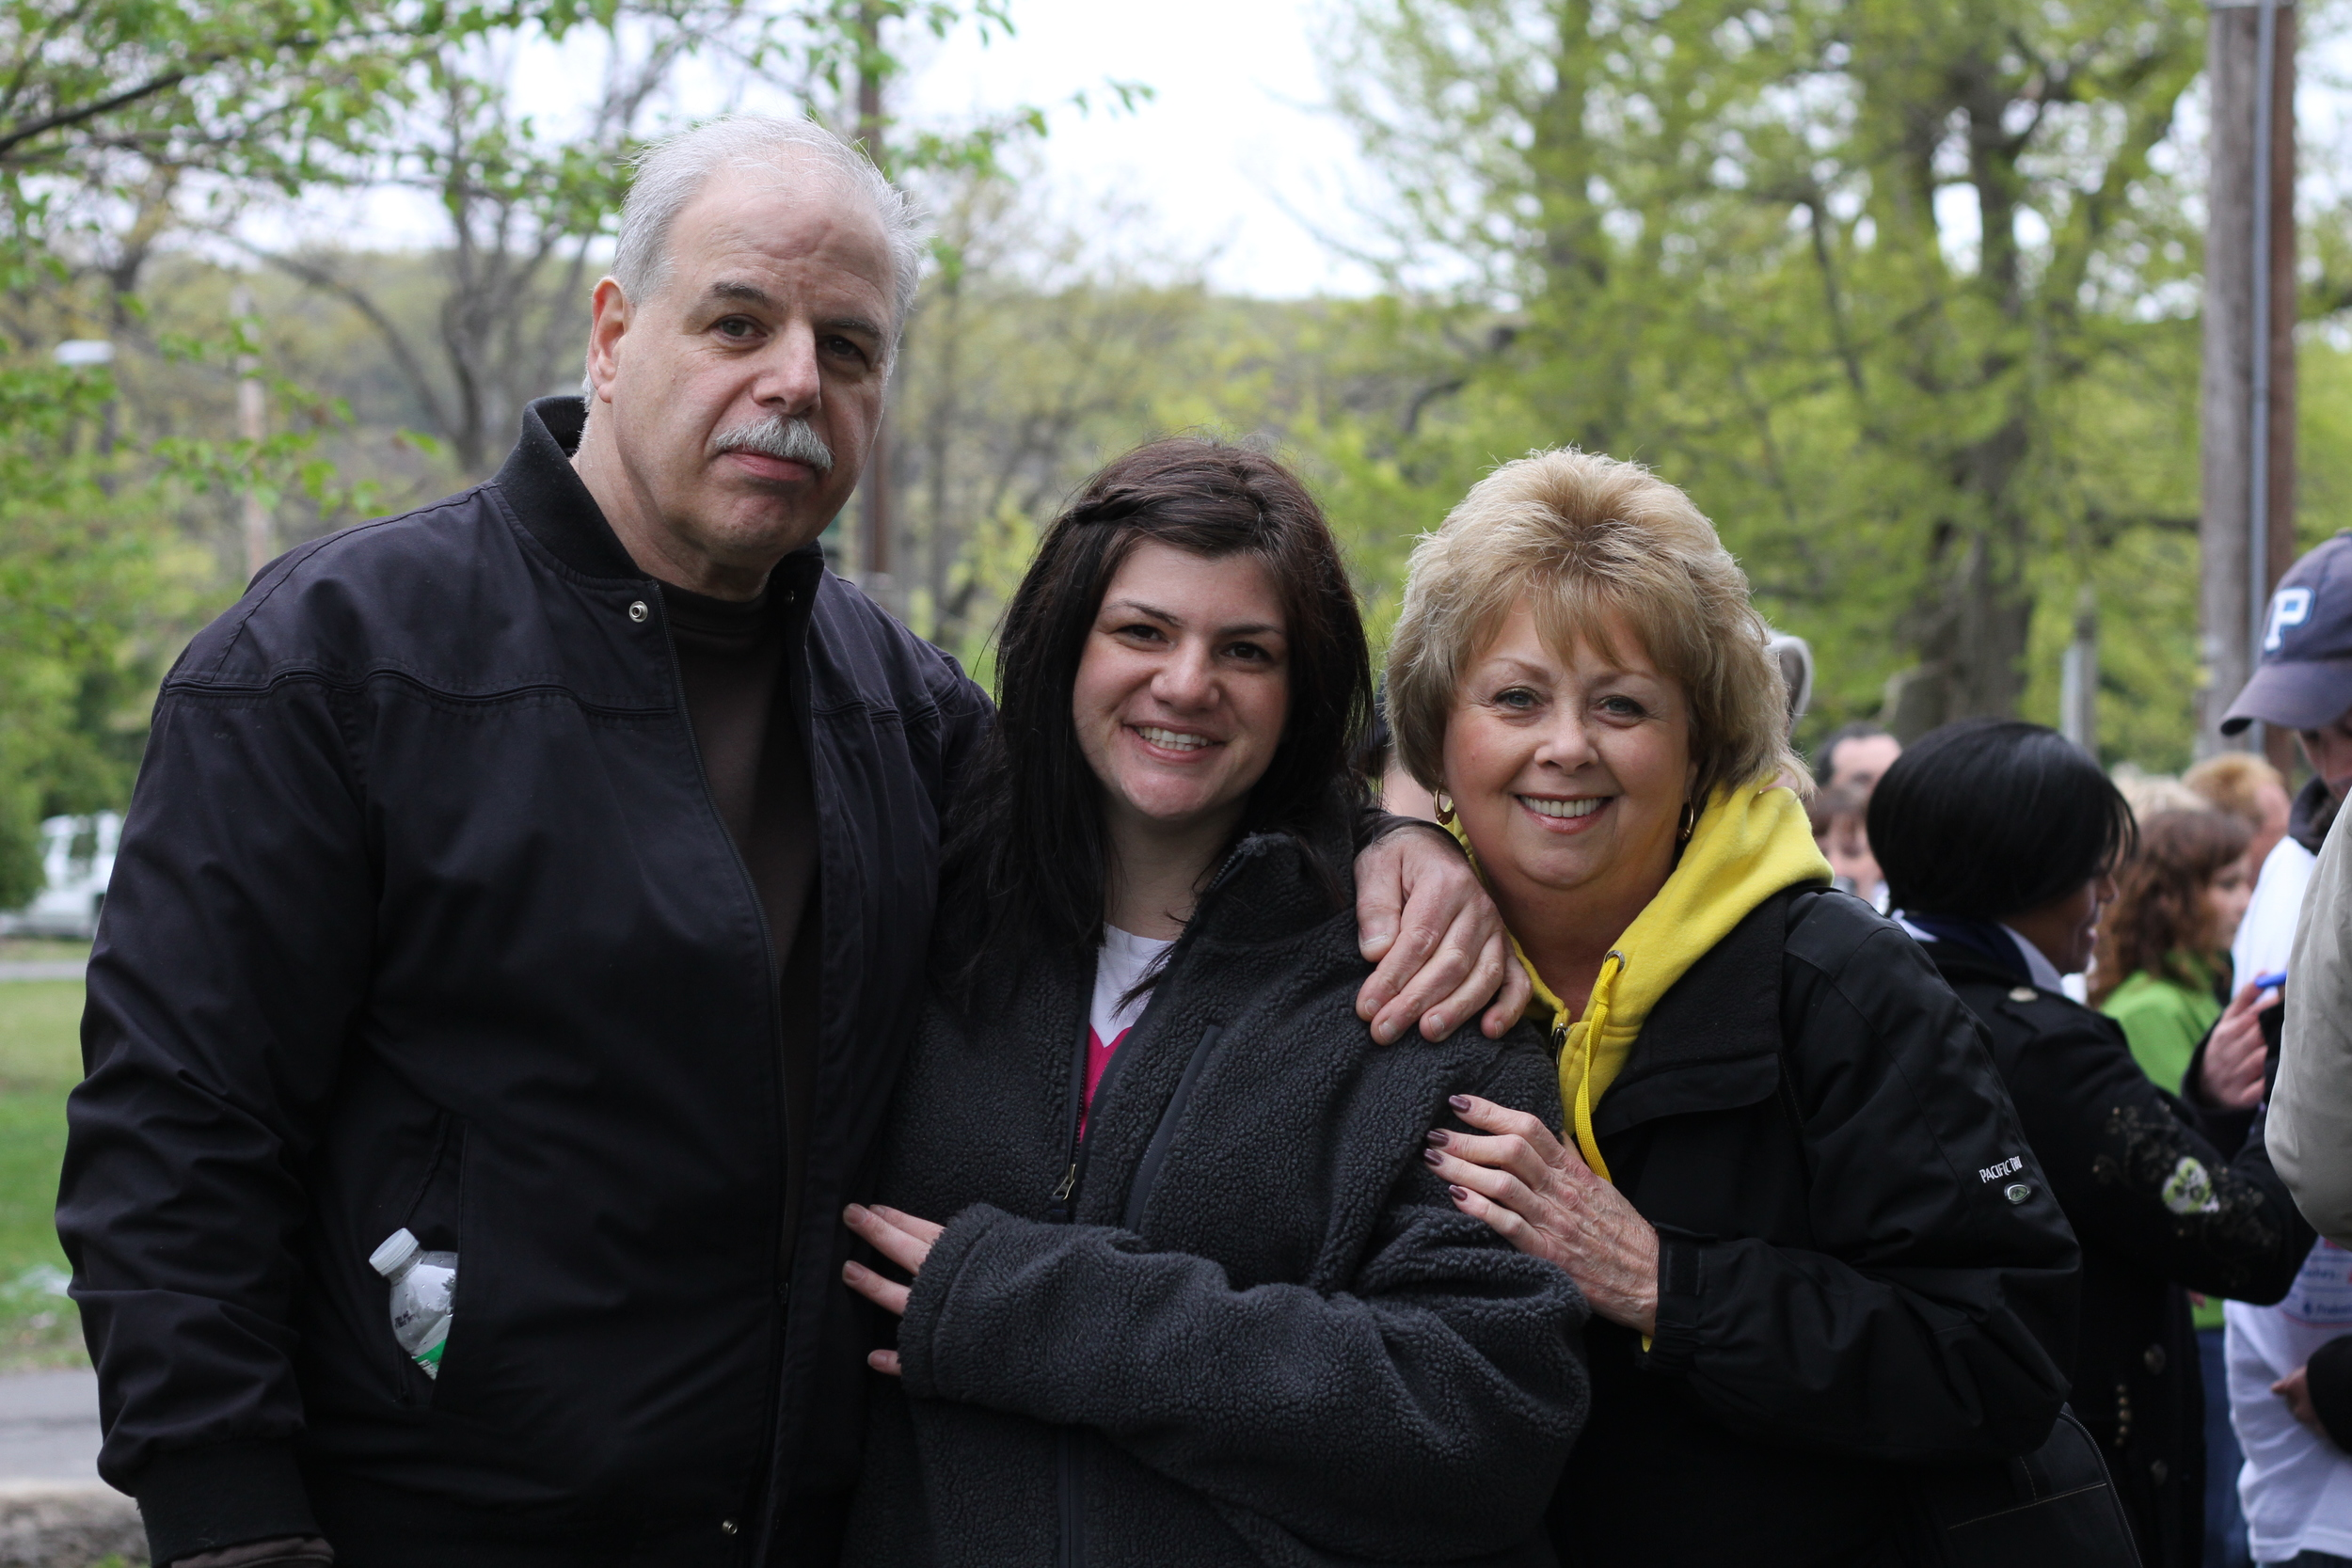 Thank you Mom and Dad for an incredible day. I'm so very thankful for you and your constant support. <3